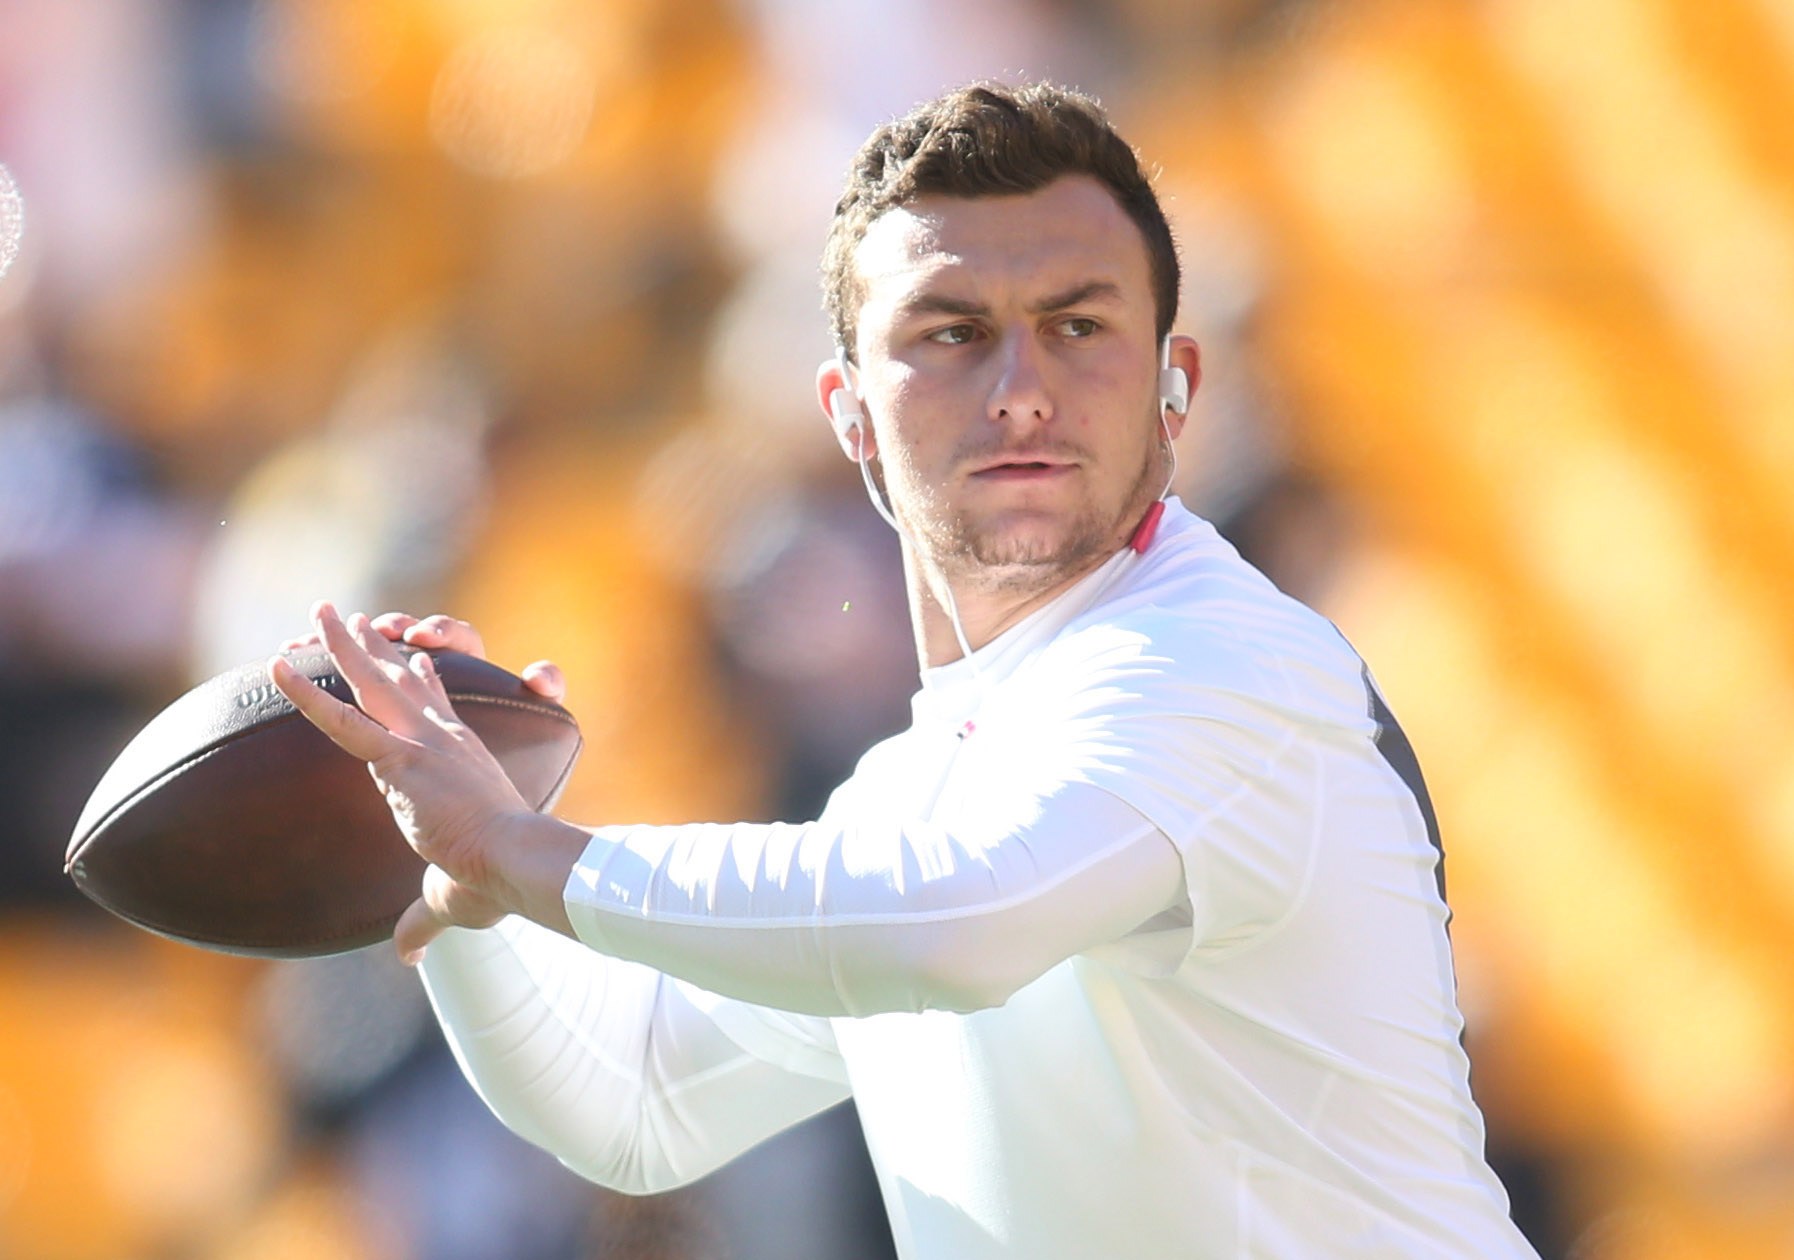 Thanks To Bovada You Can Now Bet On Whether Johnny Manziel Will Be On An Nfl Roster In